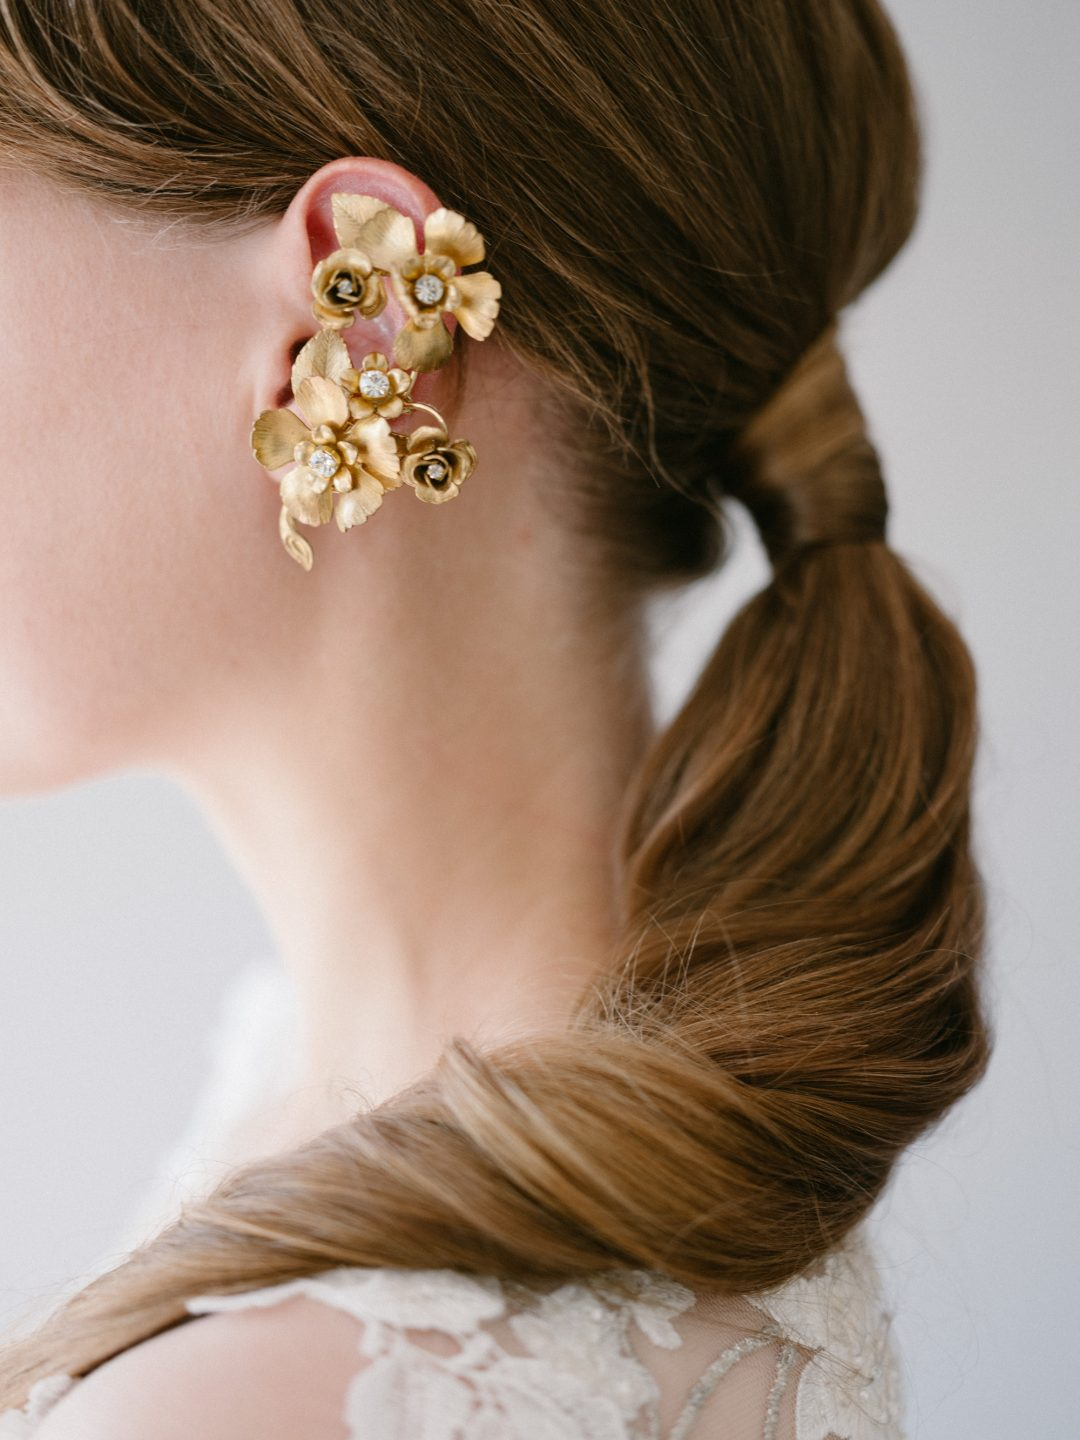 Style 910 - Floral Bridal Ear Cuff - by SIBO Designs Couture www.sibodesigns.com